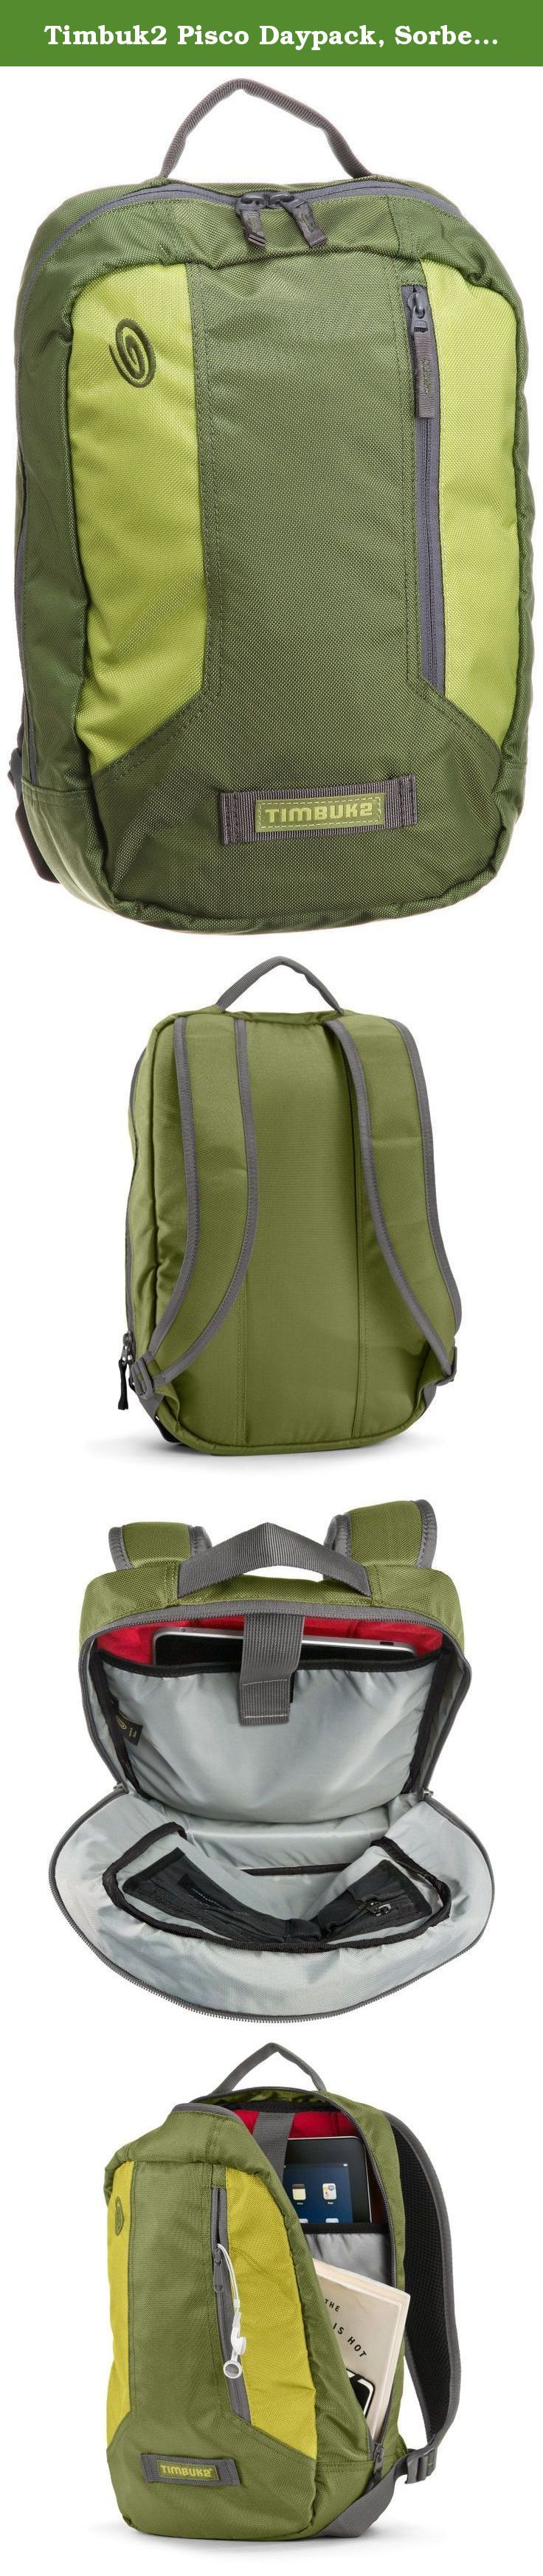 Timbuk2 Pisco Daypack, Sorbet Green/Algae Green/Gunmetal, Small. 377-2-7141 Color: Sorbet Green / Algae Green / Gunmetal Features: -Product Type:School Backpack -Material:Fabric -Color:Black -Color:Blue -Color:Green -Color:Grey / Silver -Color:Purple -Pattern:Solid -iPad and Tablet Pocket:Yes -Age:Adults -Gender:Men's -Gender:Women's. Dimensions: -Overall Product Weight:0.9.